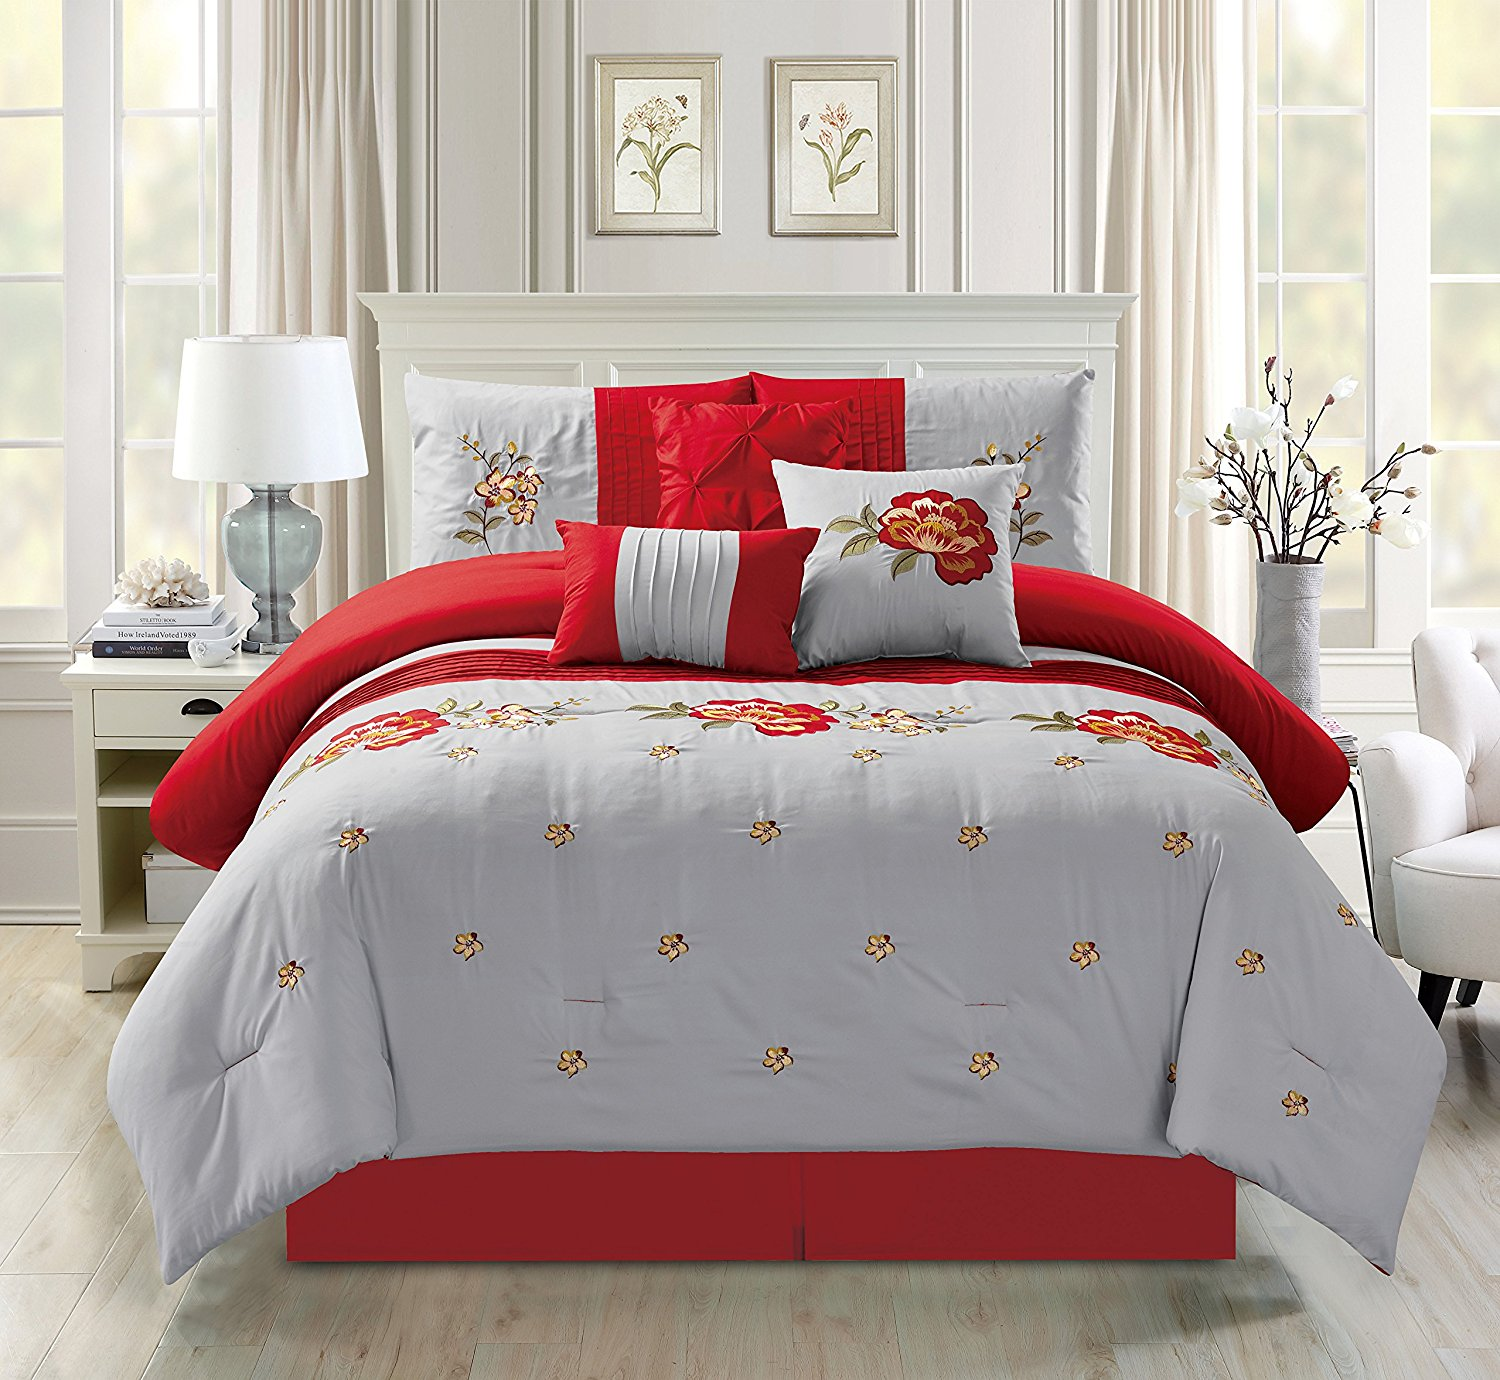 Empire Home Oversized Gray & Red 7-Piece Floral Embroidered Bedding Comforter Set with 21068 - Queen Size